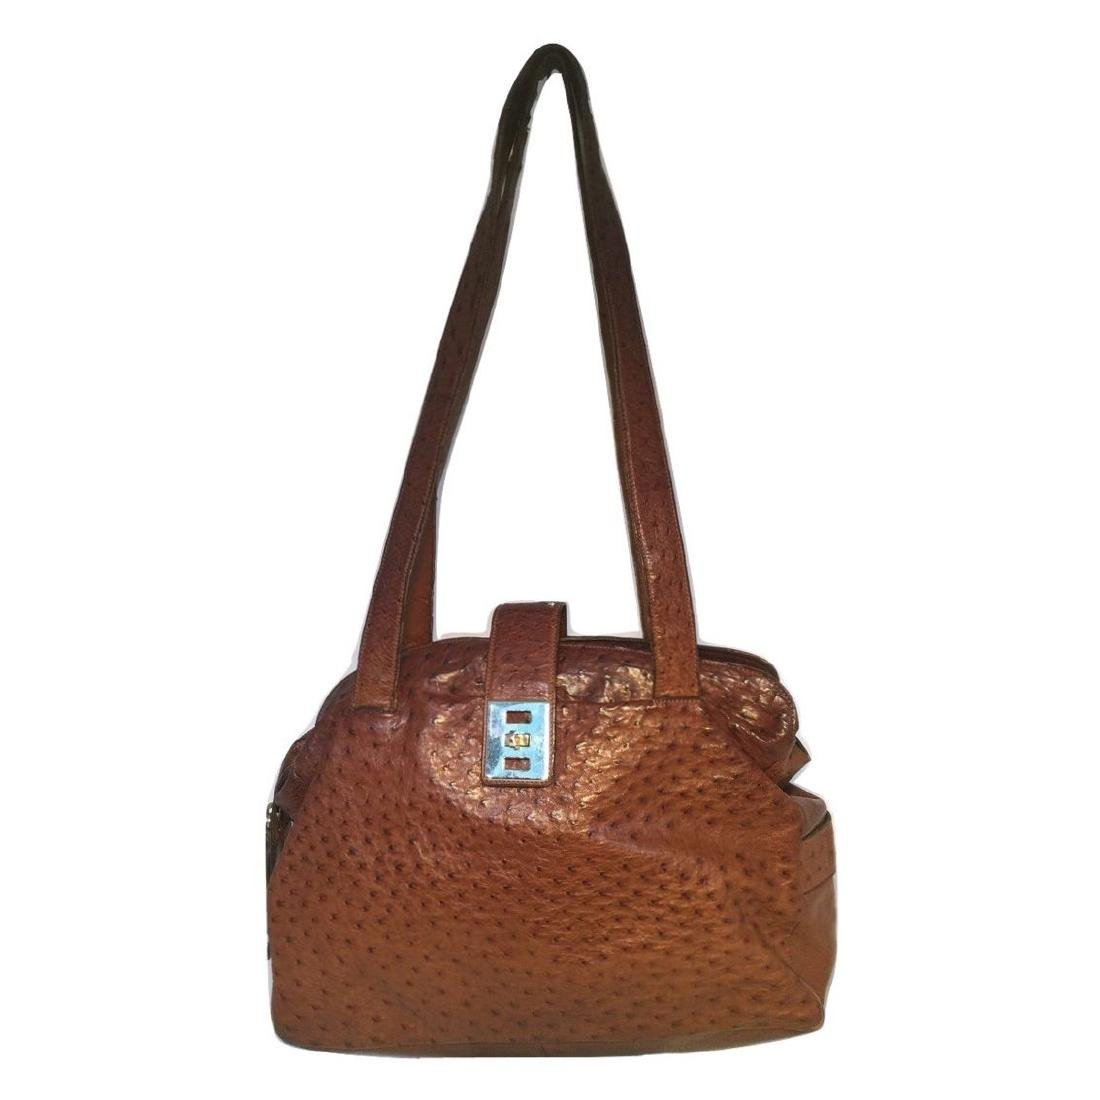 Mauro Governa Brown Ostrich Leather Shoulder Bag